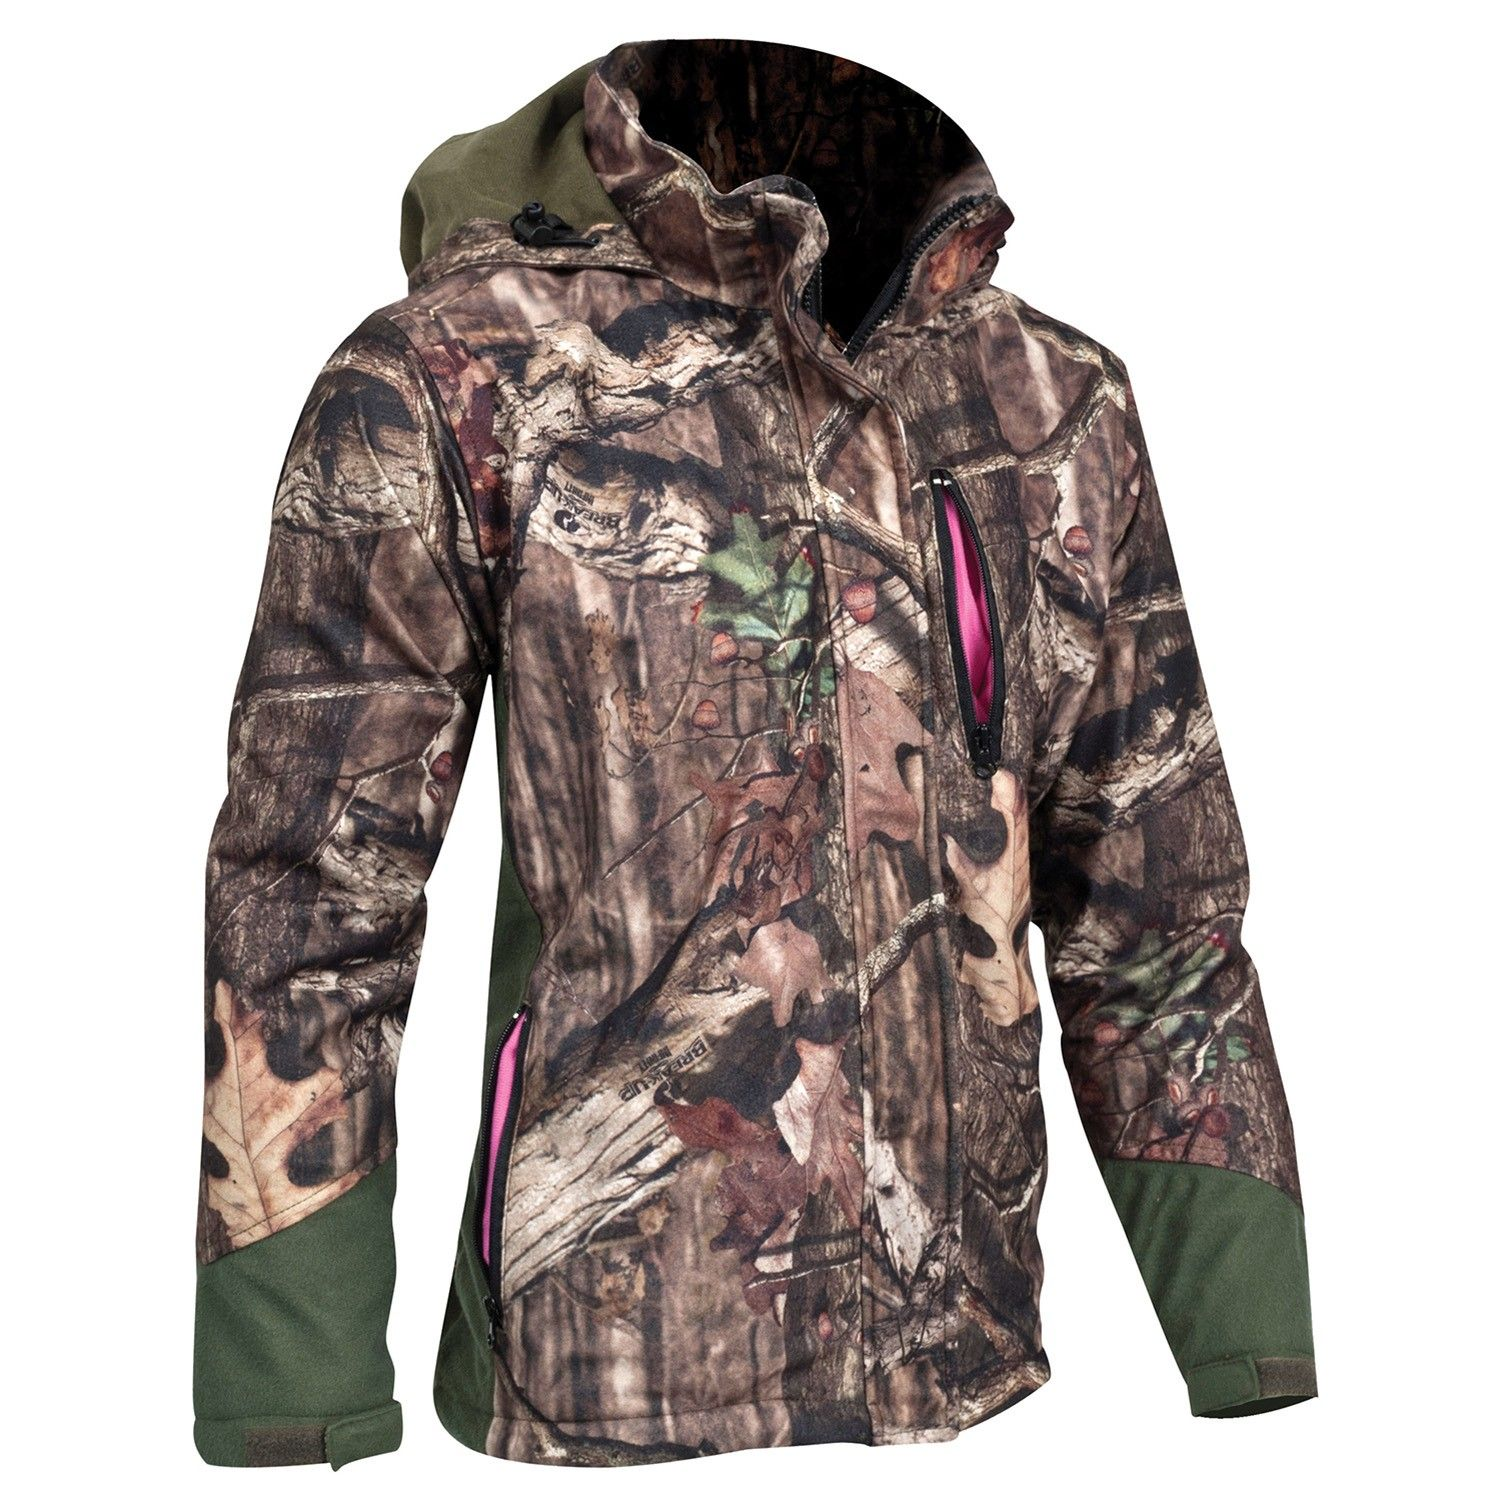 Chasse Veste Camouflage Cotton Tree Camouflage Pêche Chasse Hoody armée